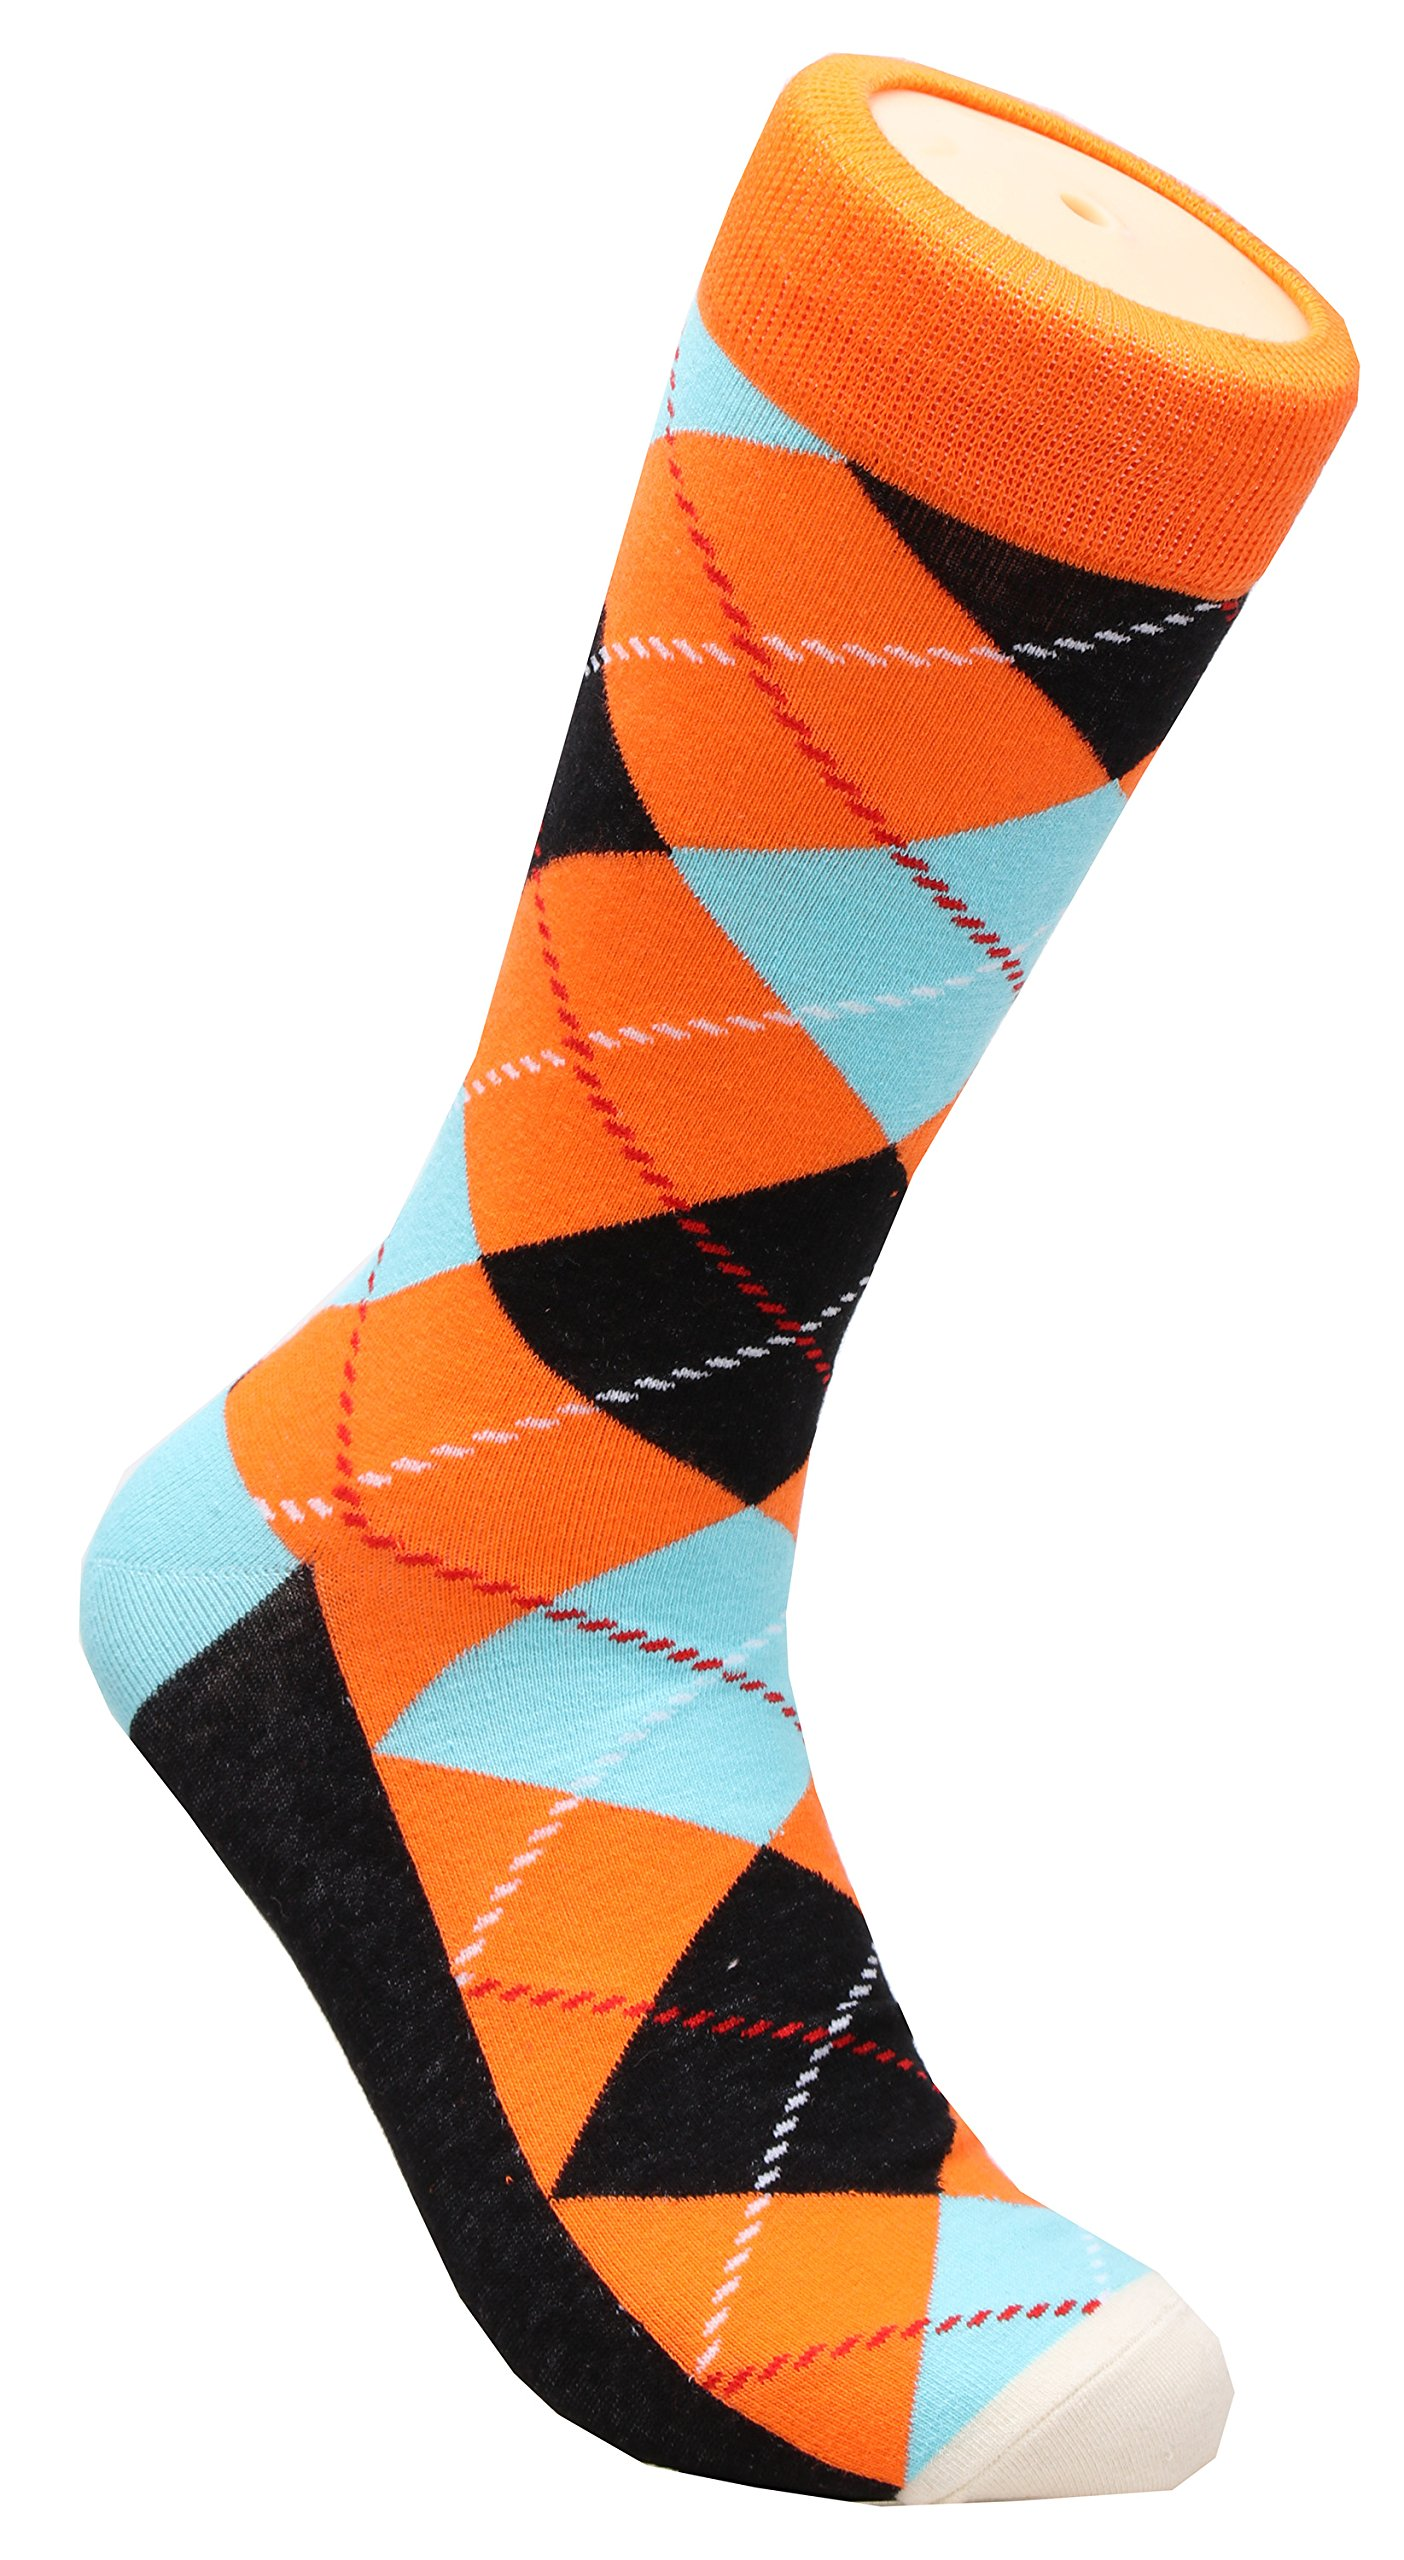 Galsang 4 Pack Cotton Argyle Business Trouser Dress Socks For Men Size 6-13 A301 (mixed color) by GALSANG (Image #5)